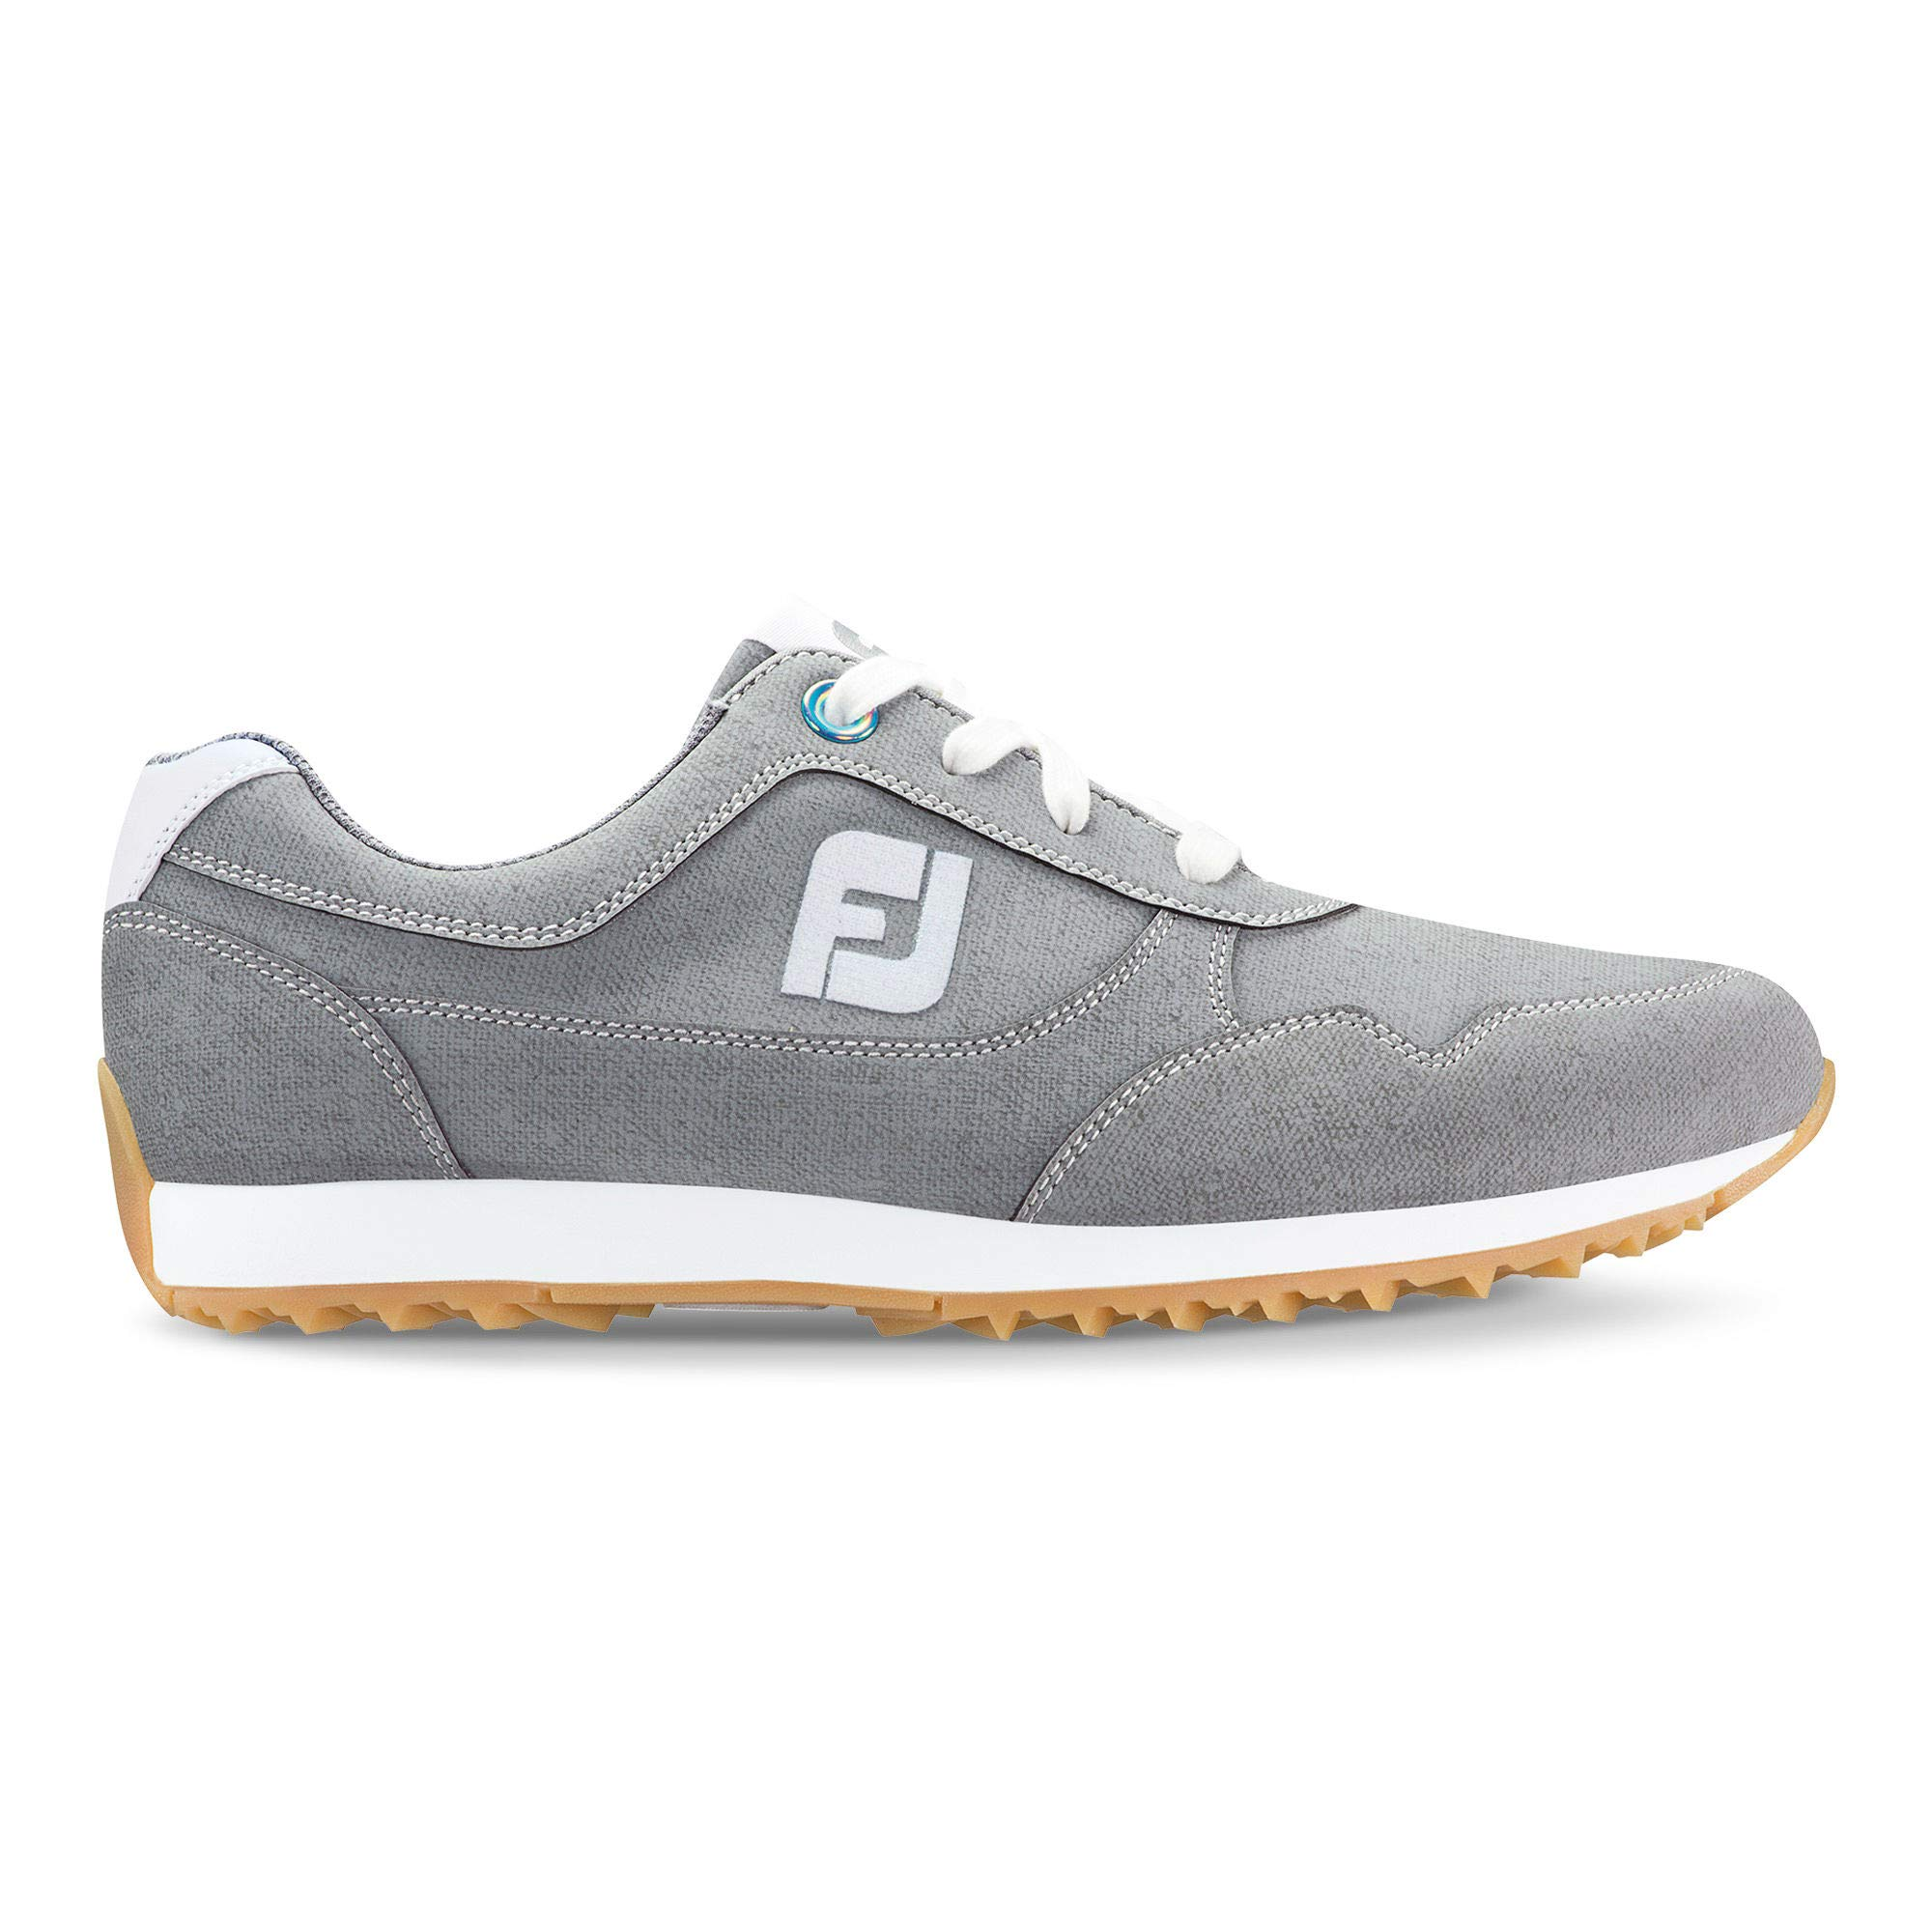 FootJoy Women's Sport Retro Golf Shoes Grey 5.5 M US by FootJoy